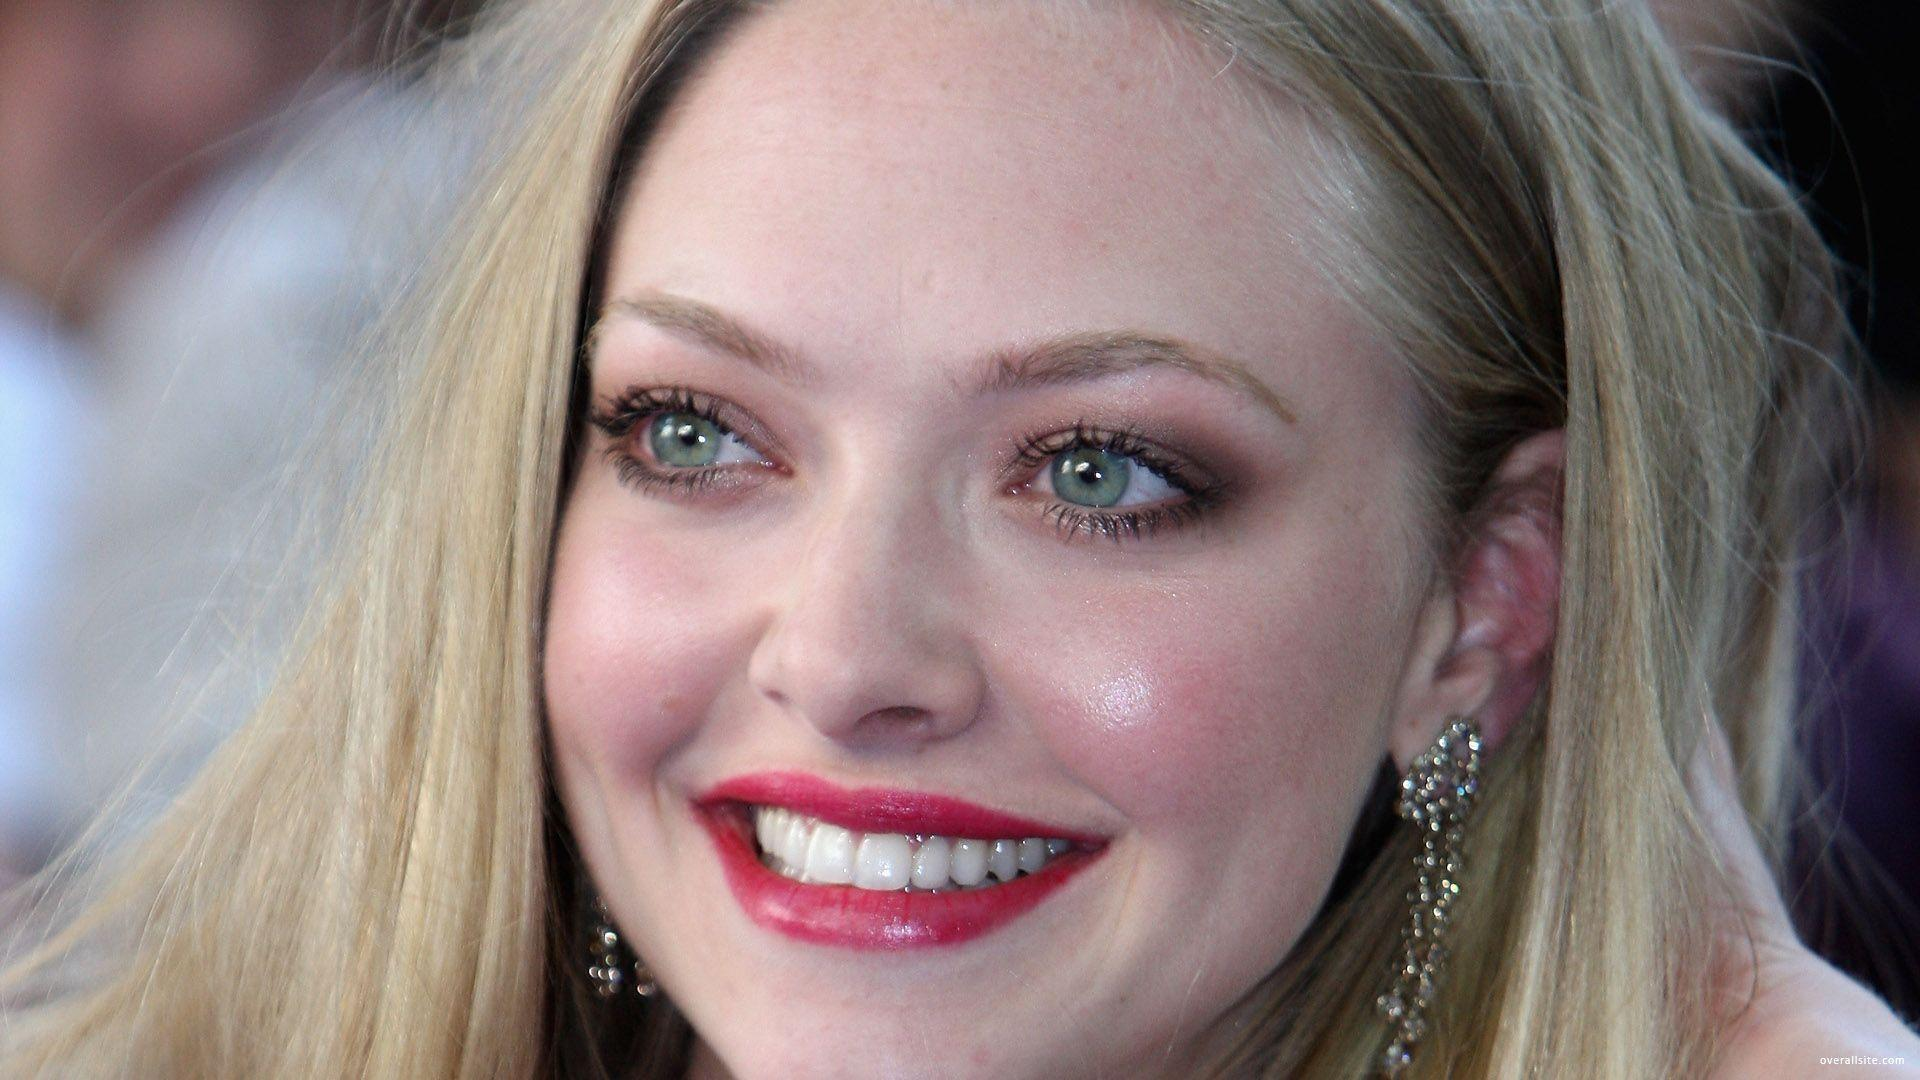 Amanda Seyfried Wallpapers 49 46062 High Definition Wallpapers